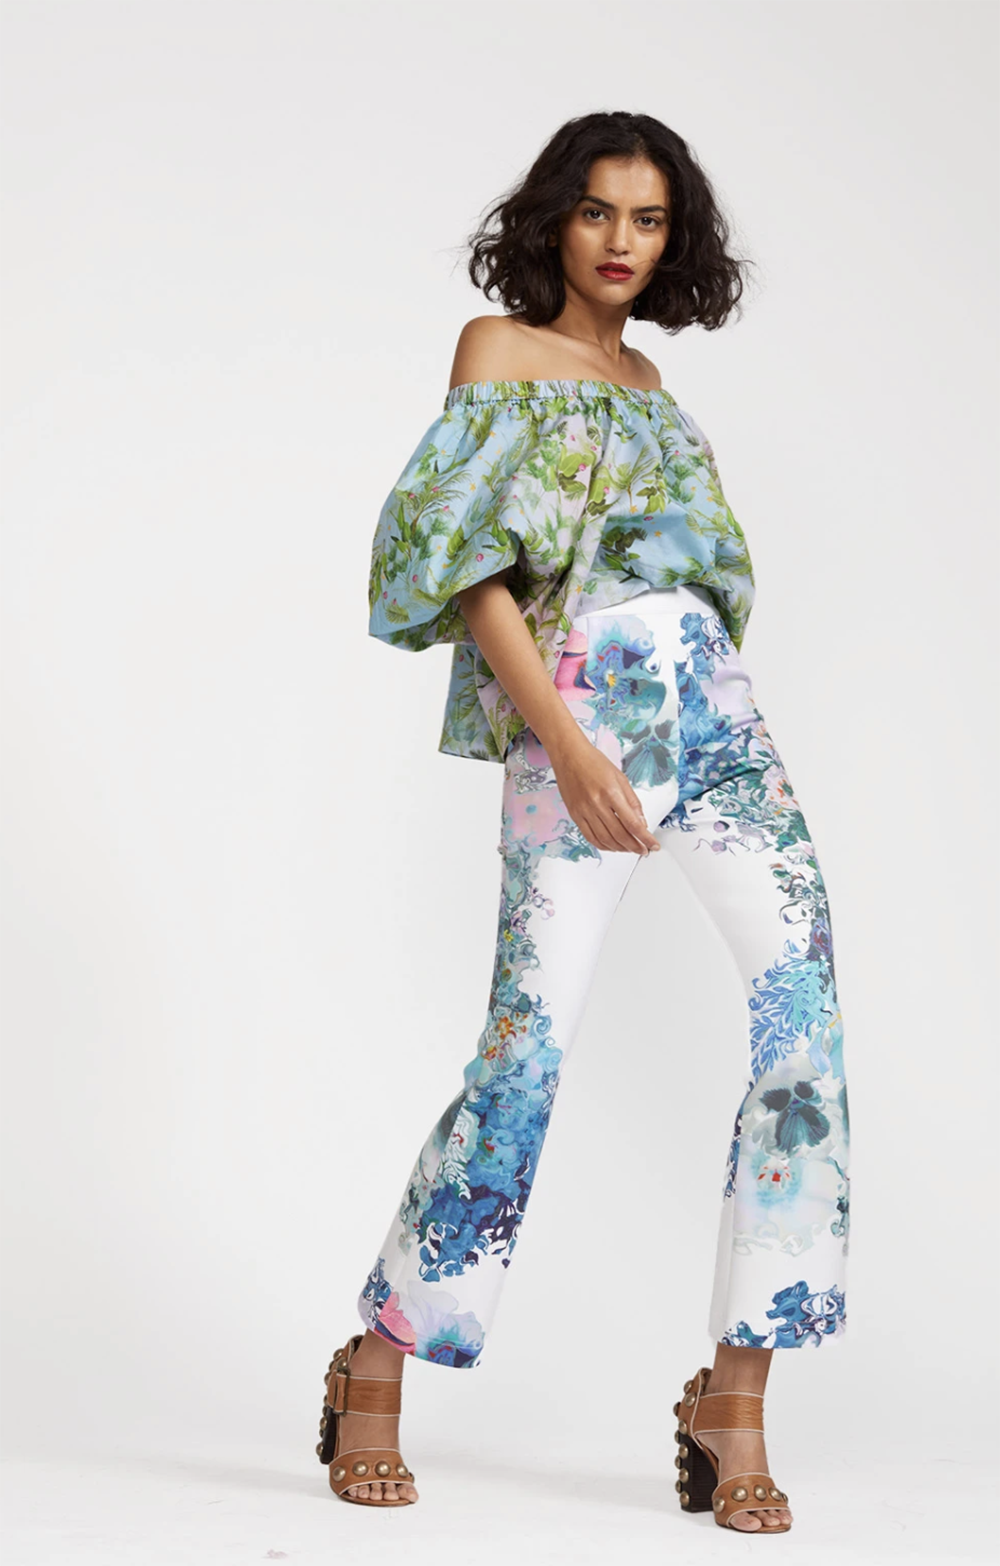 Cynthia Rowley Summer 2021 Styles I Floral Pant #summerstyle